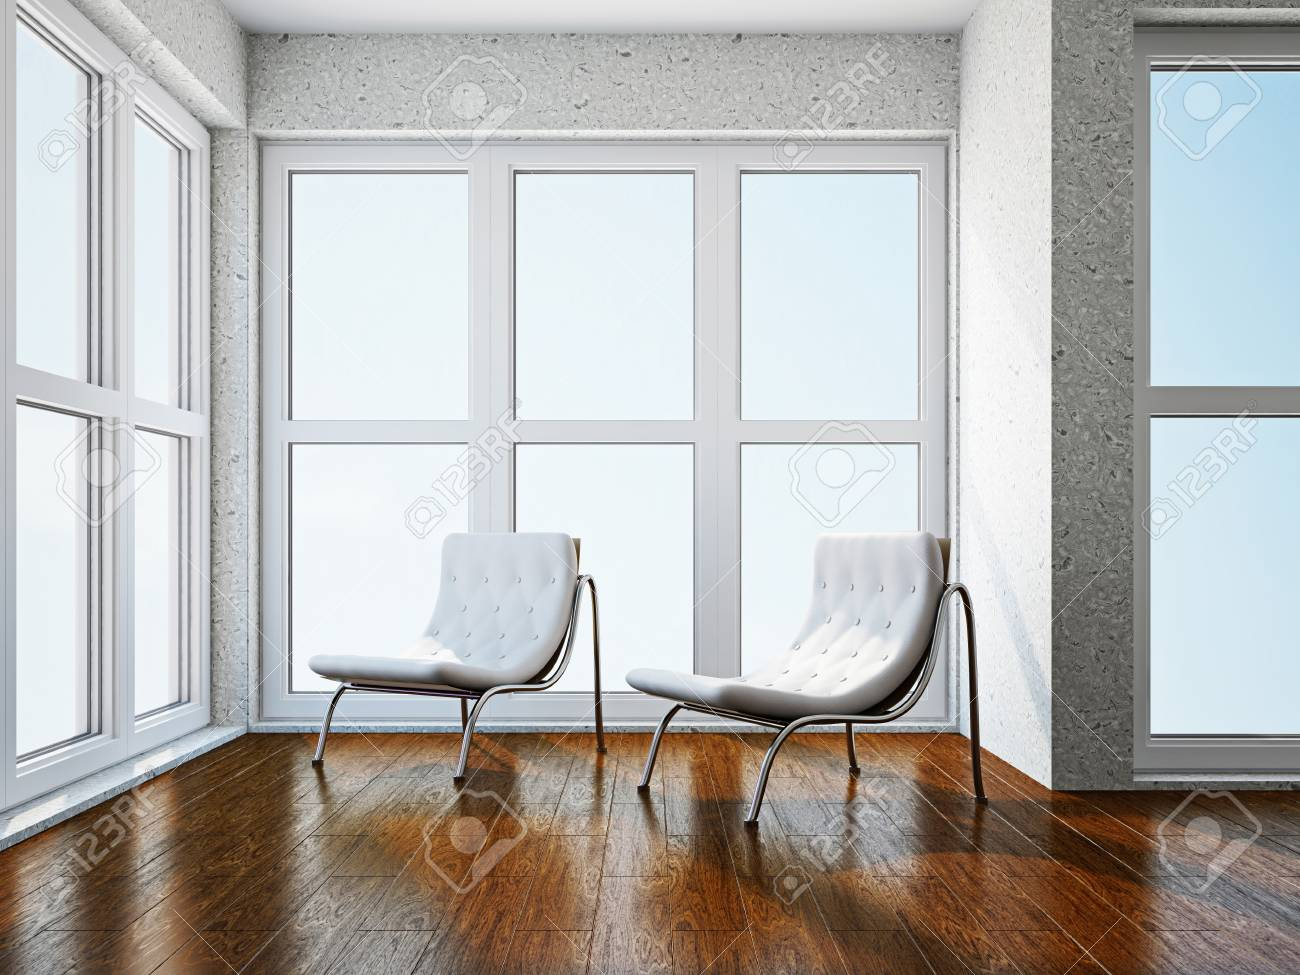 Room with two  chairs near the window Stock Photo - 18248425